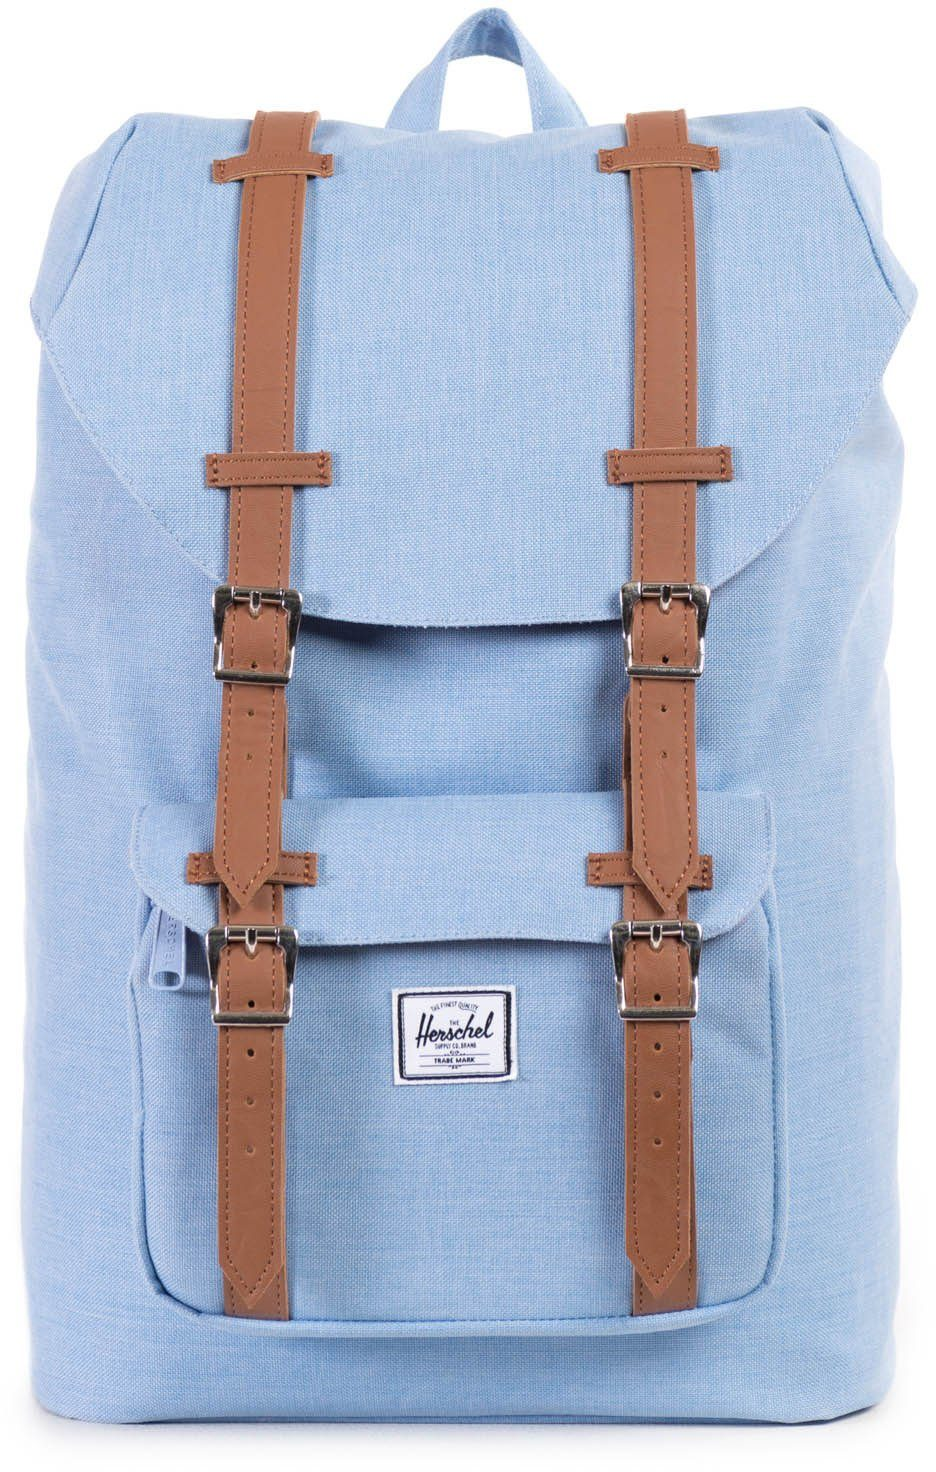 Herschel Rucksack mit Laptopfach, »Little America, Chambray, Crosshatch, Mid Volume«